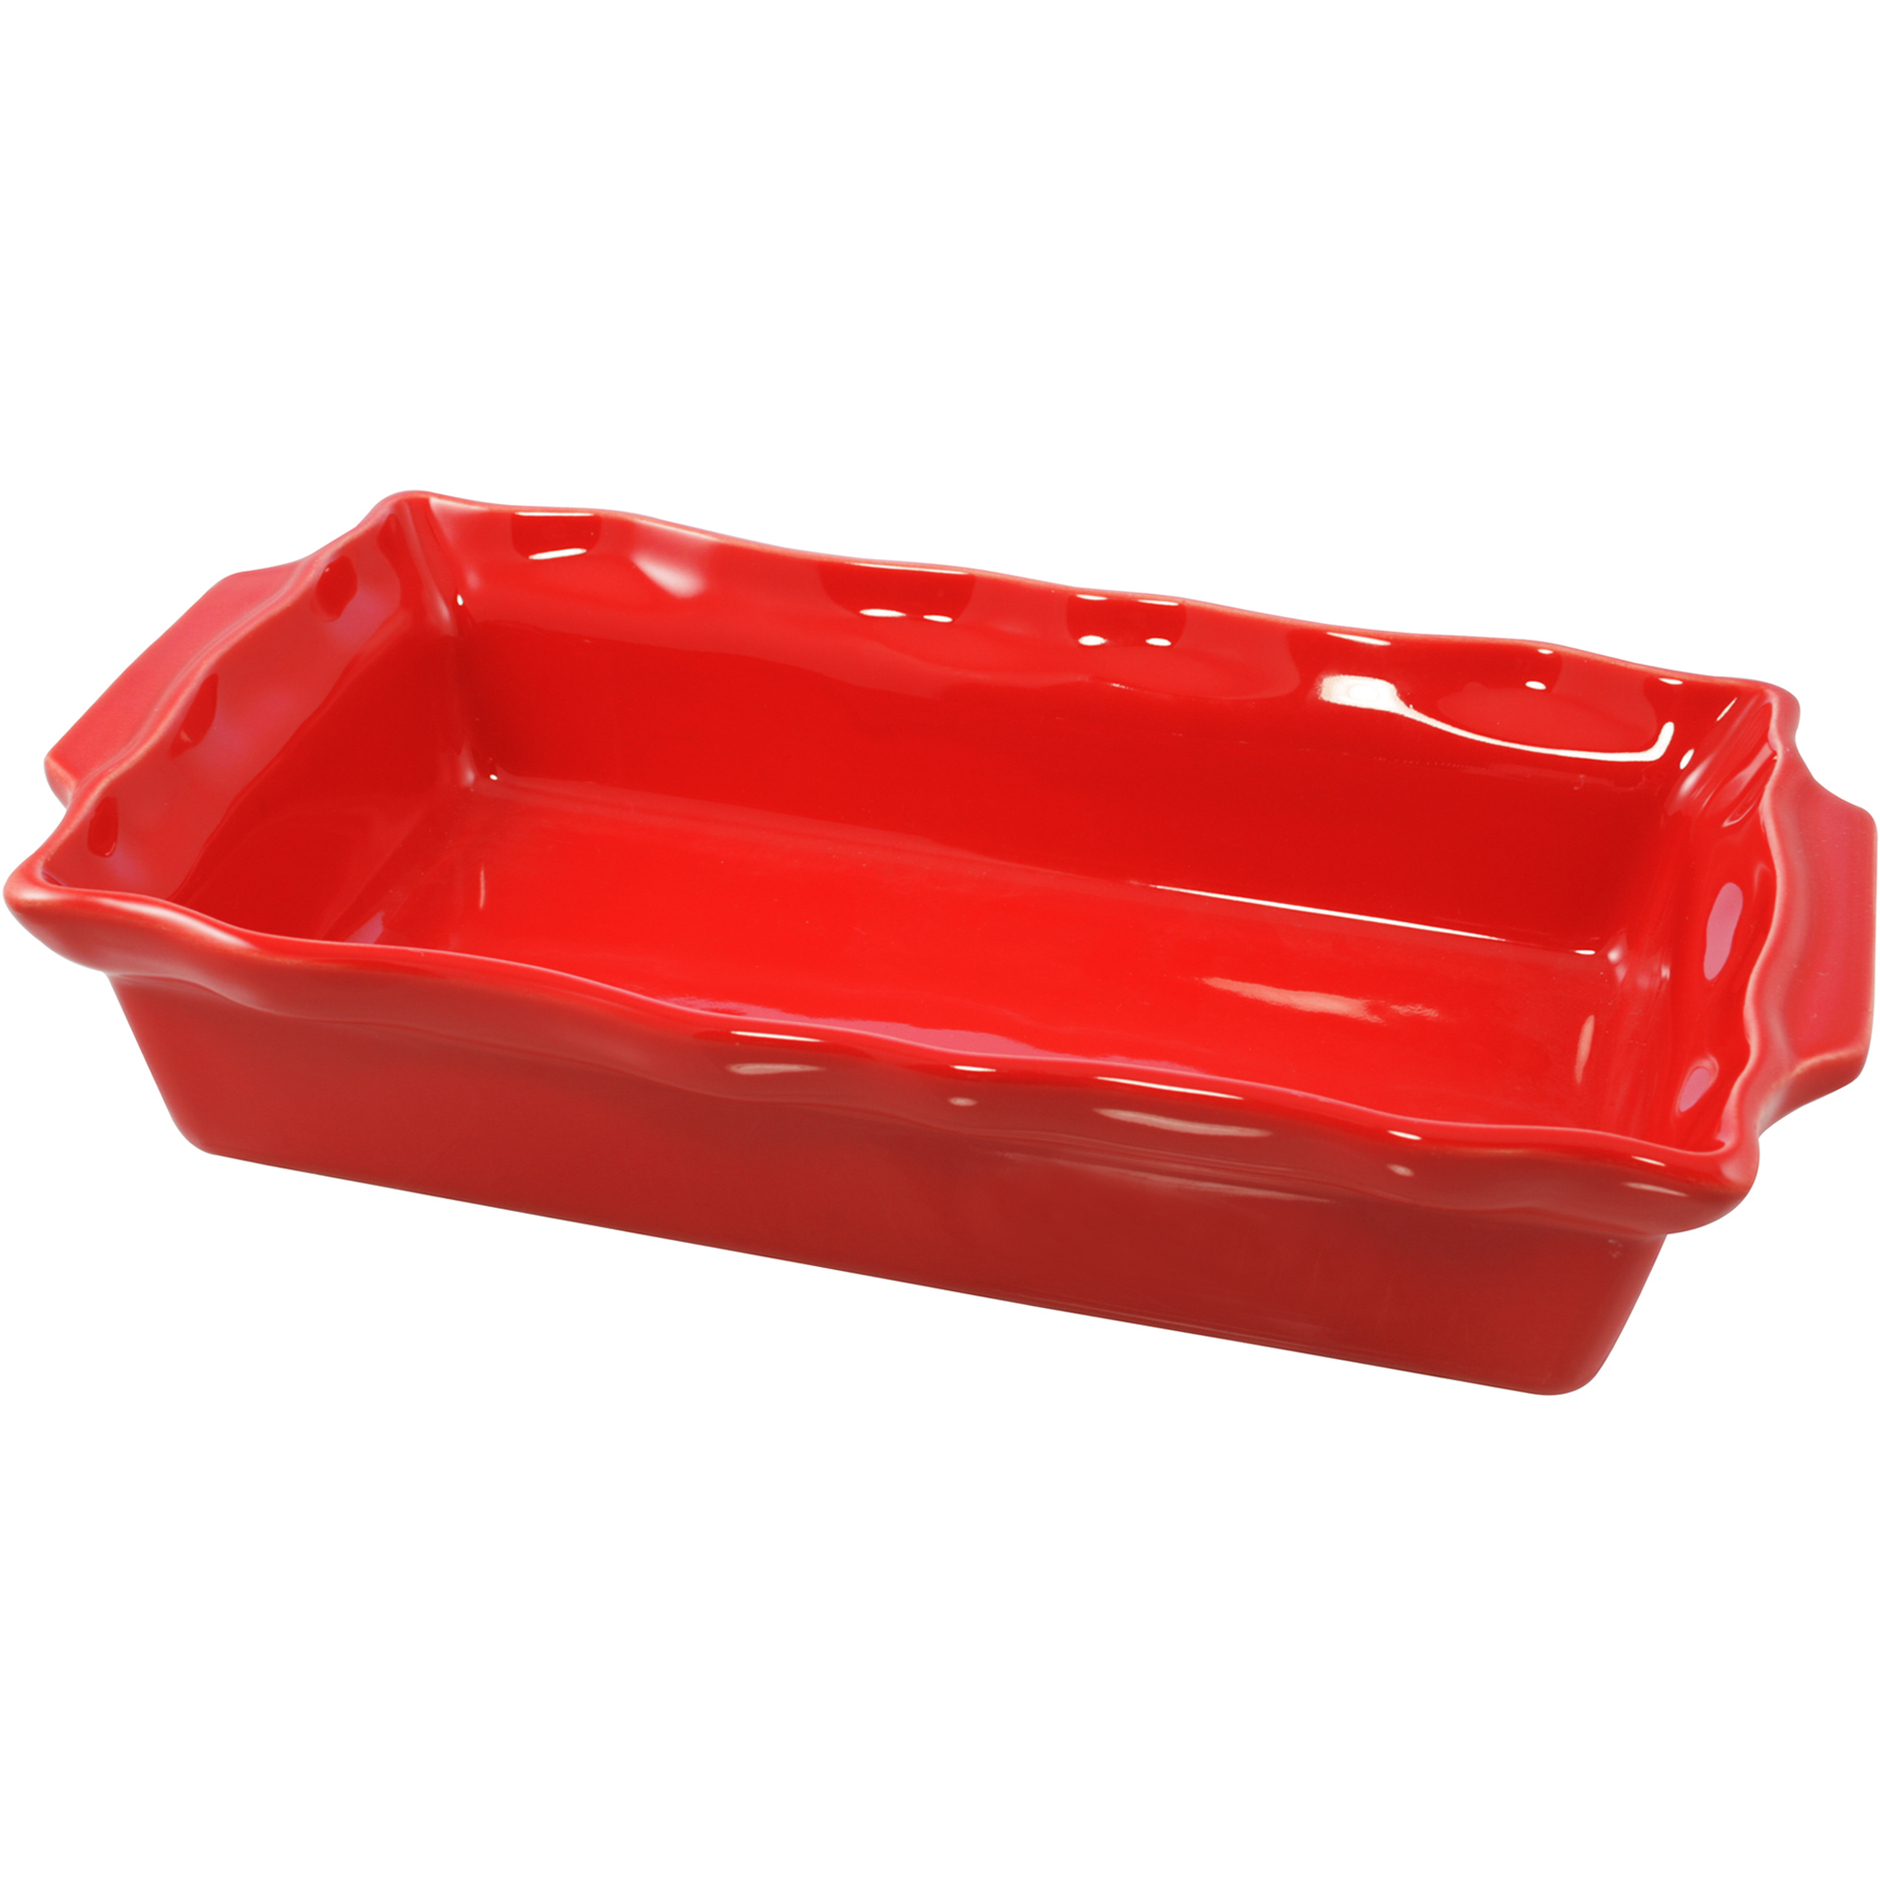 Le Cordon Bleu Paris By Swissmar Rectangular Rouge Ceramic 3 Quart Roasting Dish